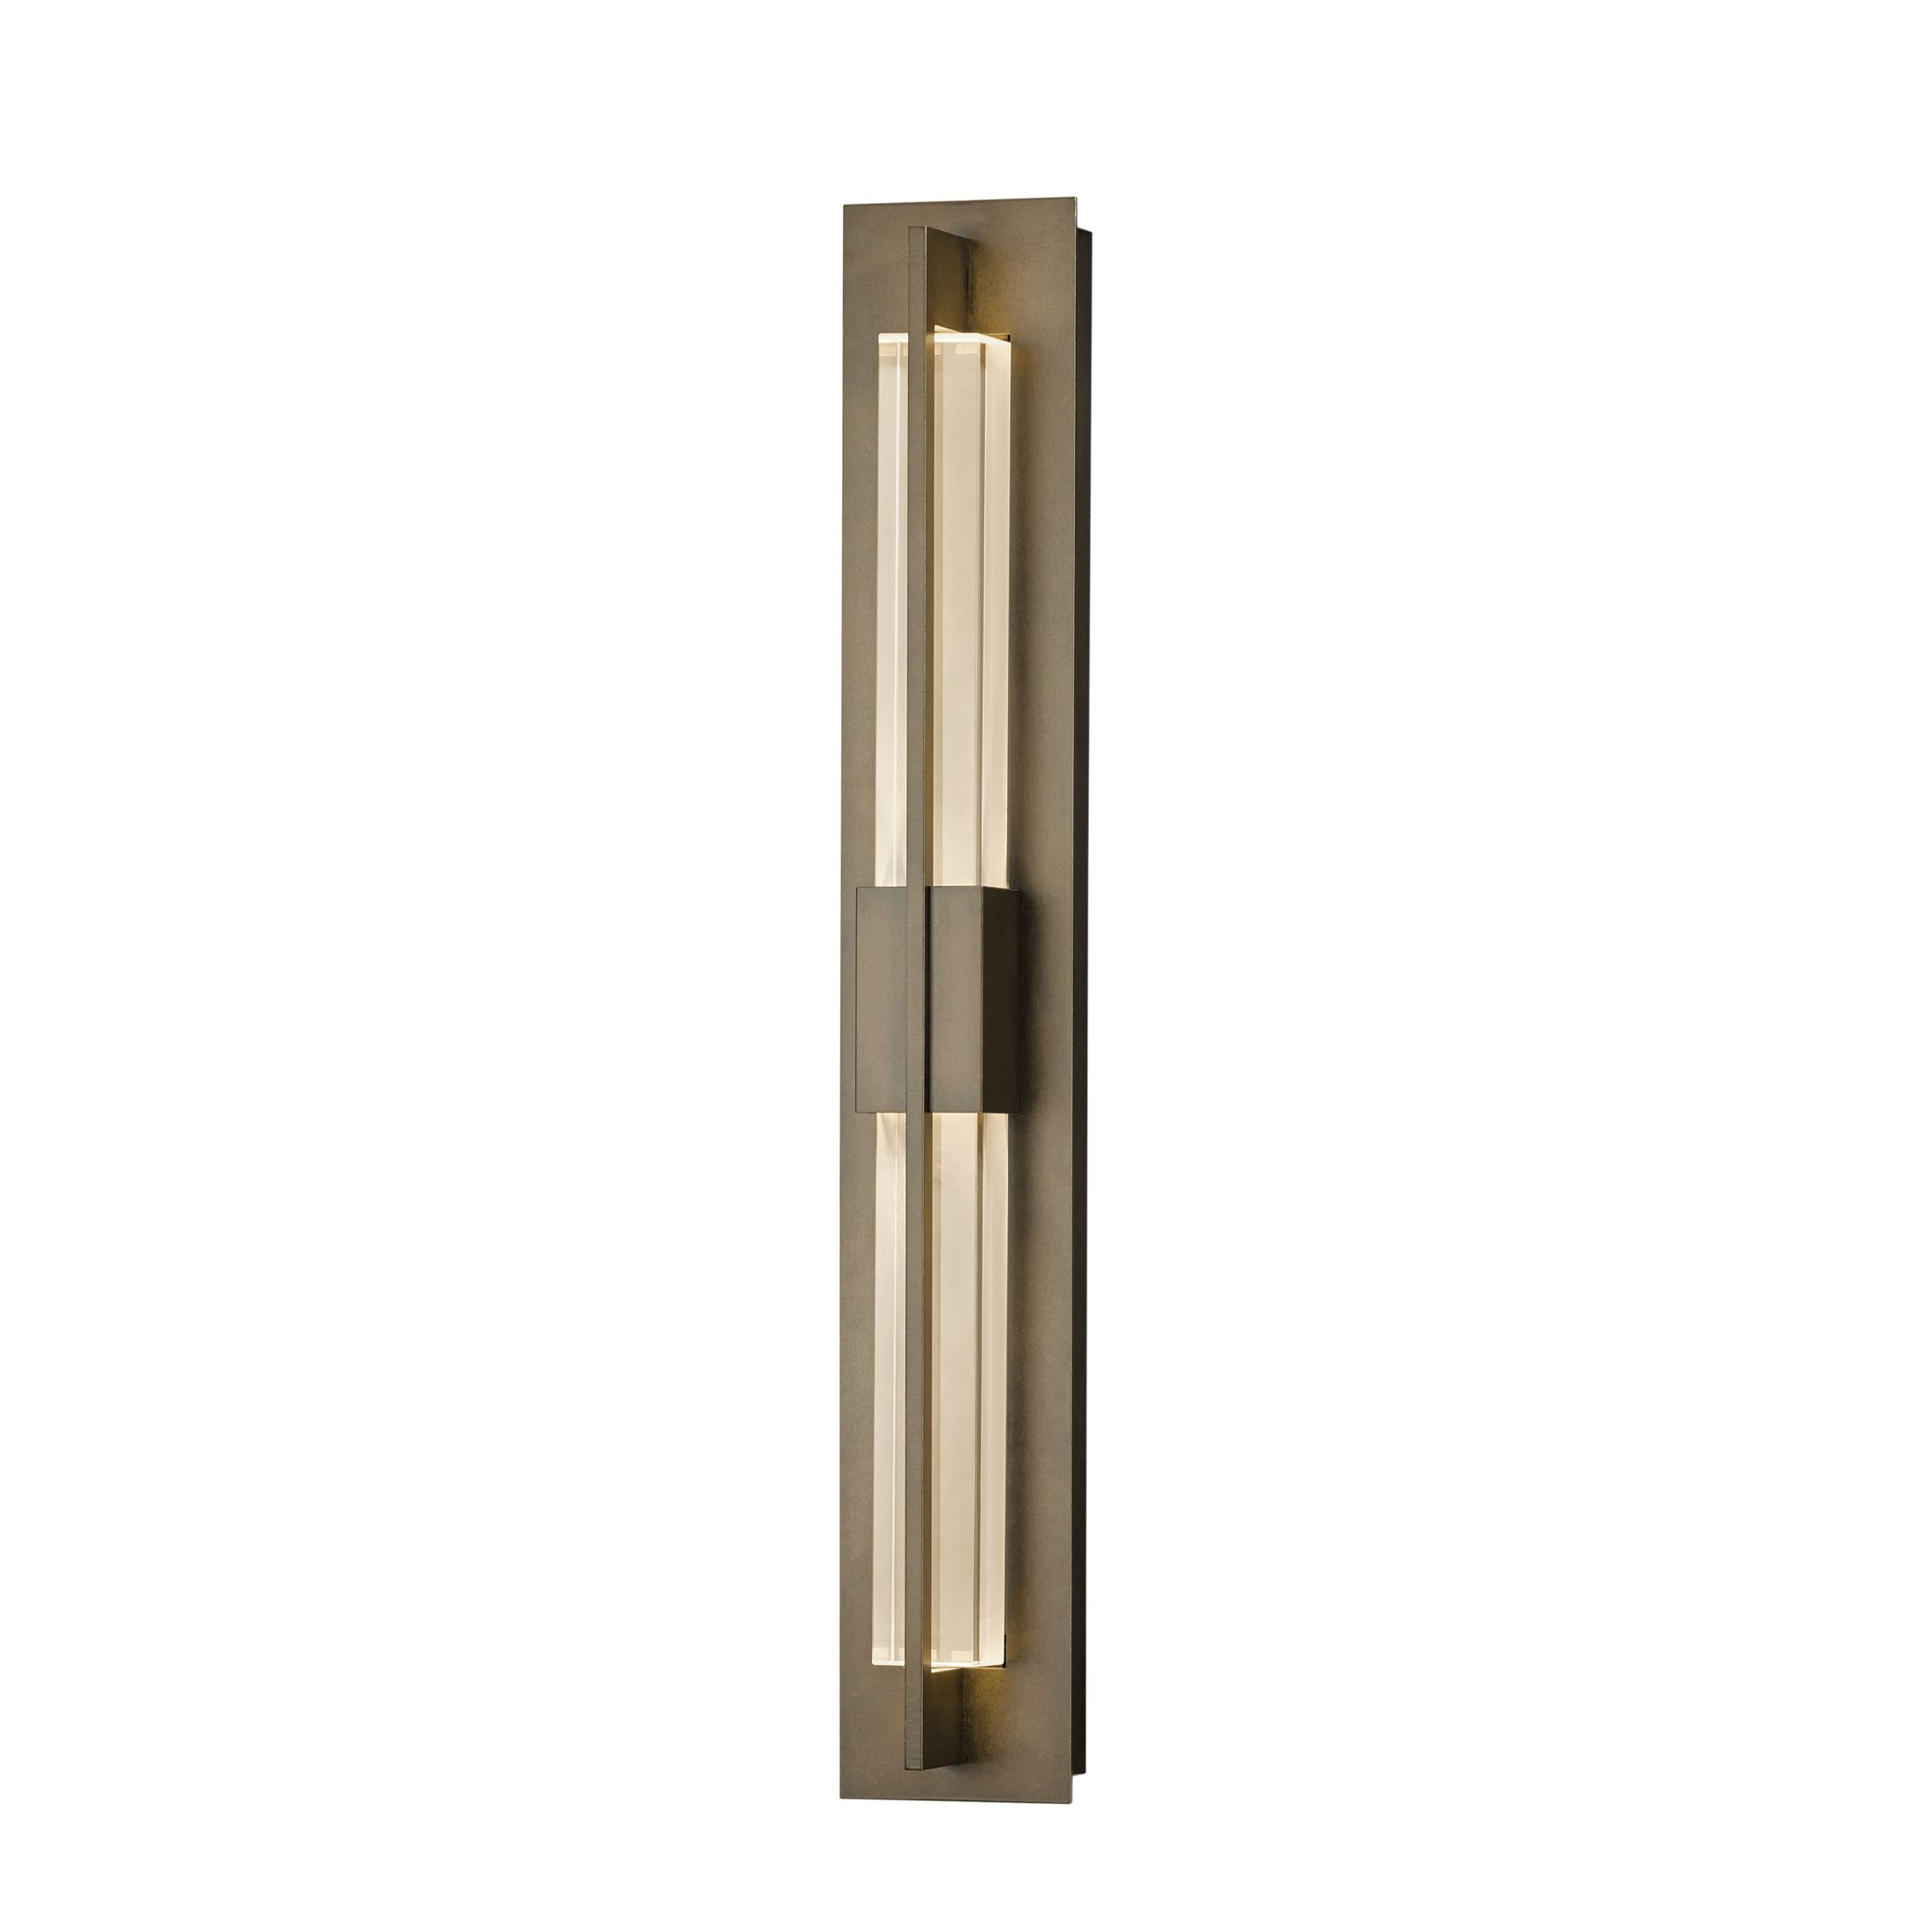 double axis led outdoor sconce – hubbardton forge - product detail double axis led outdoor sconce